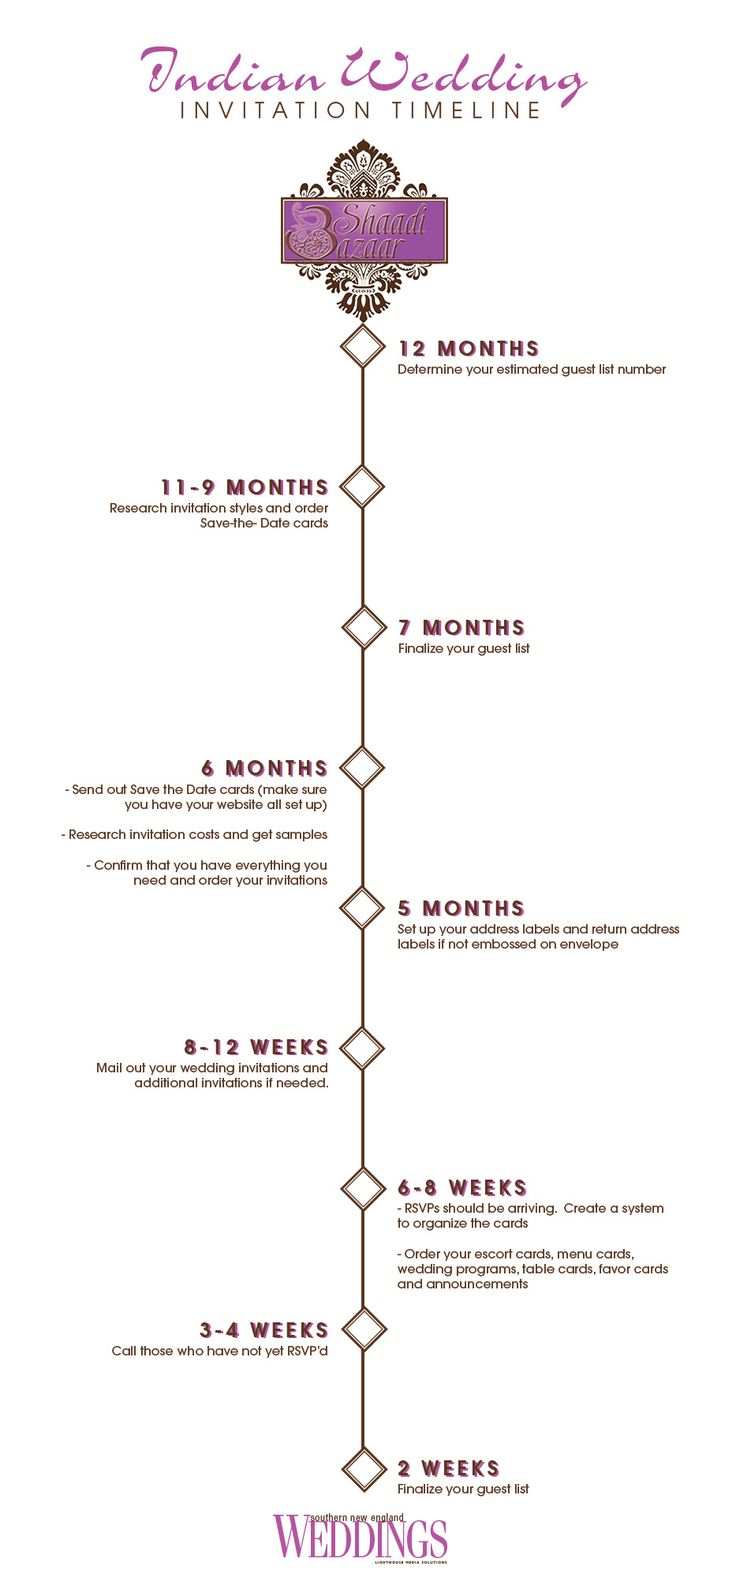 Indian Wedding Invitation Timeline | by Shaadi Bazaar |  www.shaadi-bazaar.com #shaadibazaar visit our site for more useful info